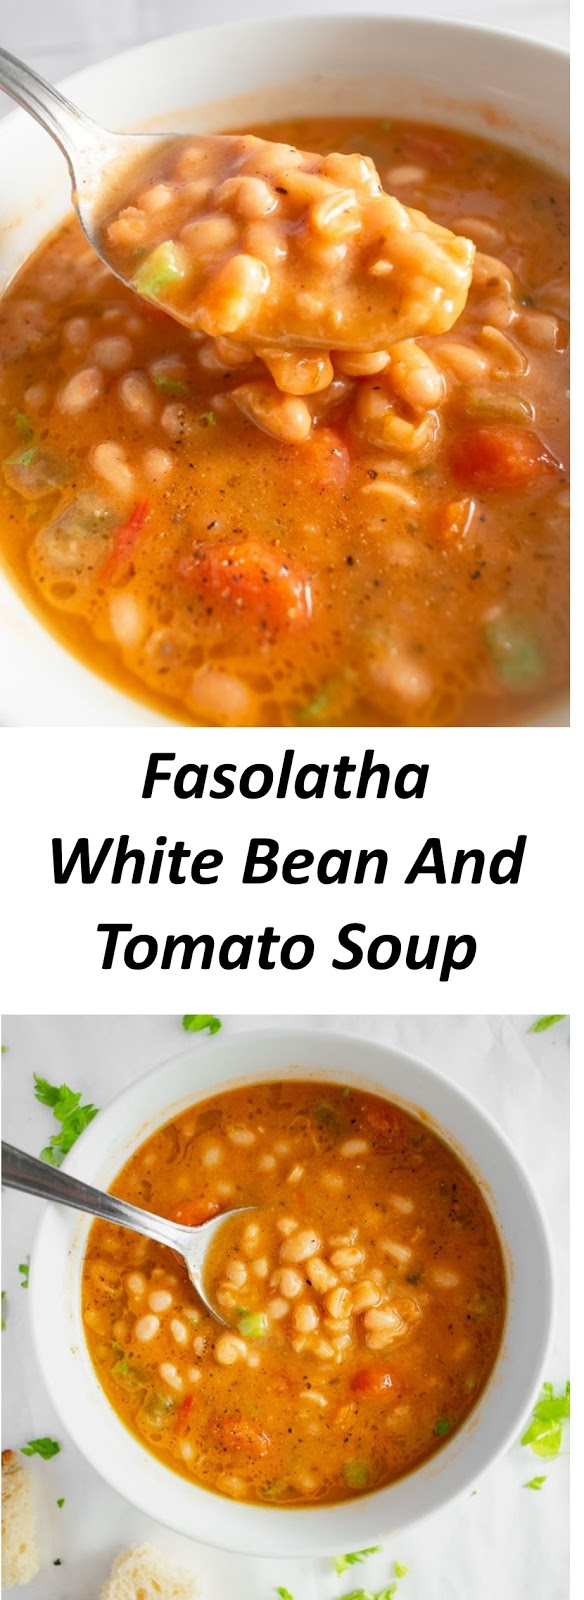 Fasolatha – White Bean And Tomato Soup